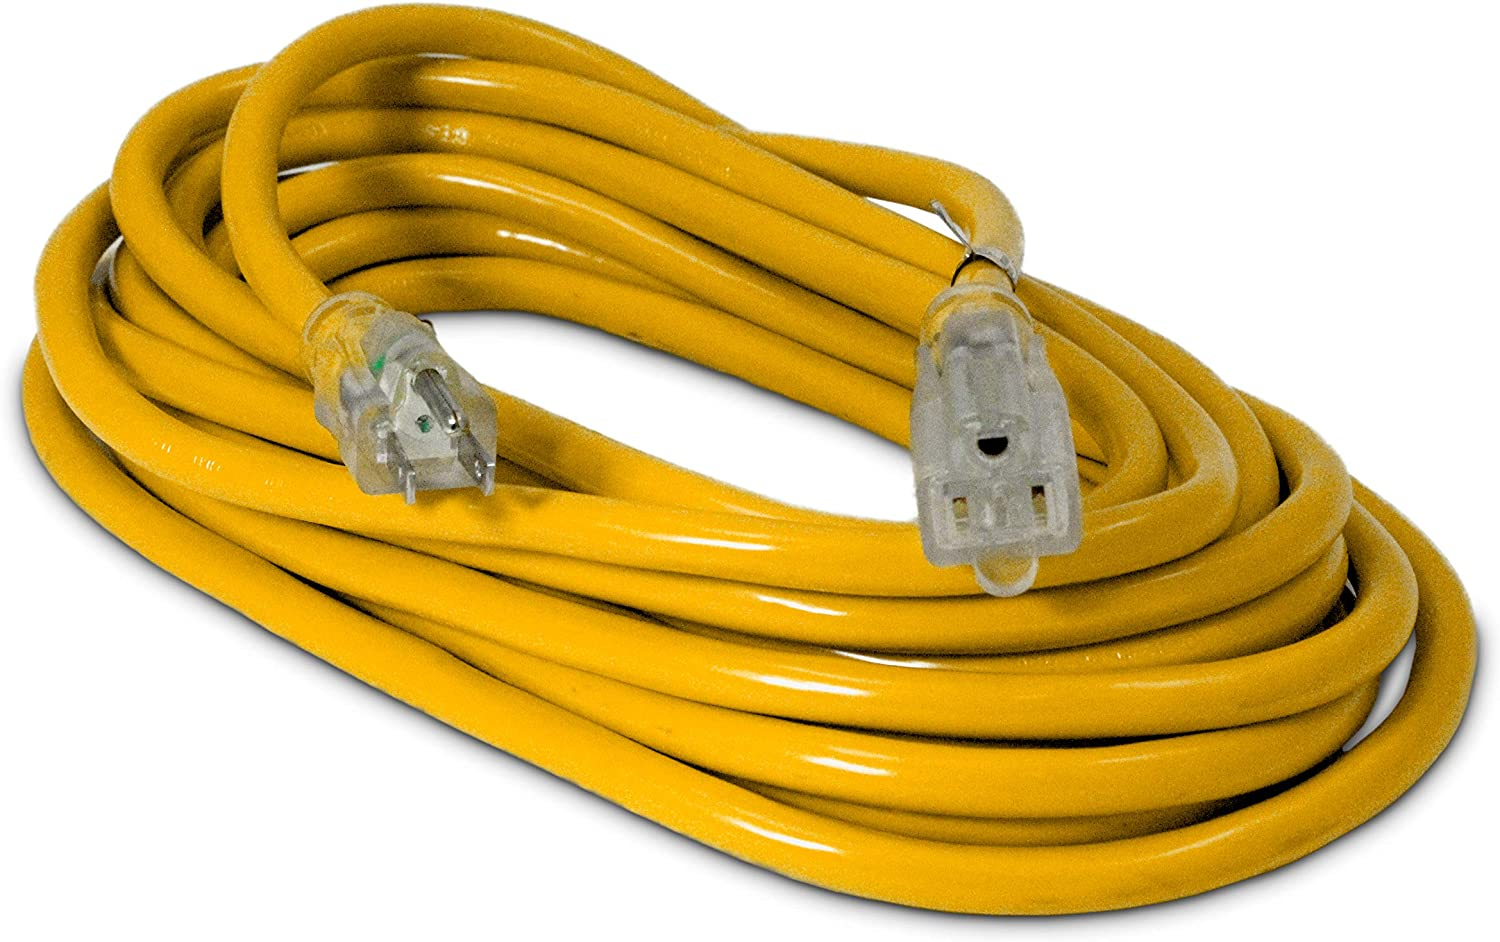 25-ft 12/3 Heavy Duty Lighted SJTW Indoor/Outdoor Extension Cord by Watt's Wire - Yellow 25' 12-Gauge Grounded 15-Amp Three-Prong Power-Cord (25 foot 12-Awg)